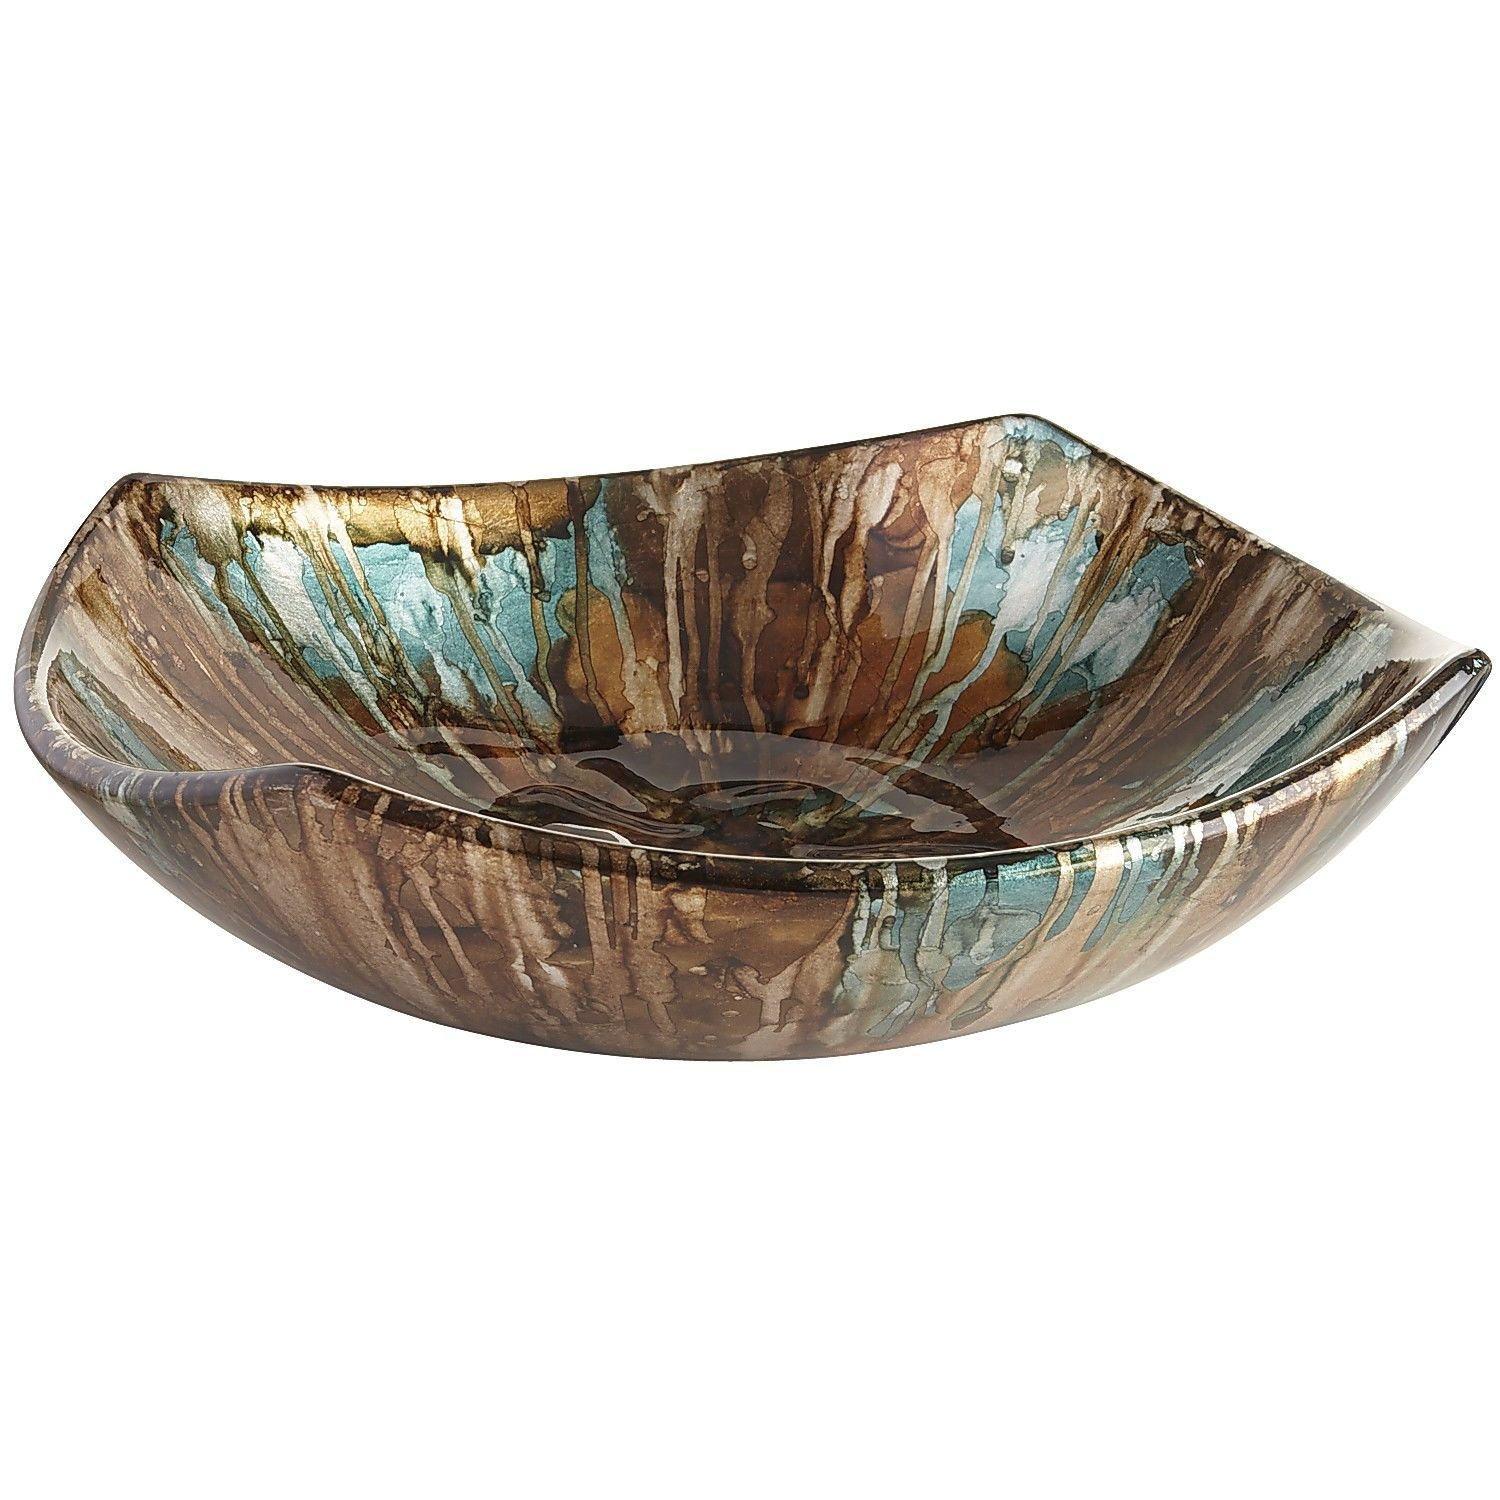 Decorative Ceramic Bowl Turquoise & Taupe Foiled Bowl  Pier 1 Imports  Taupe Color